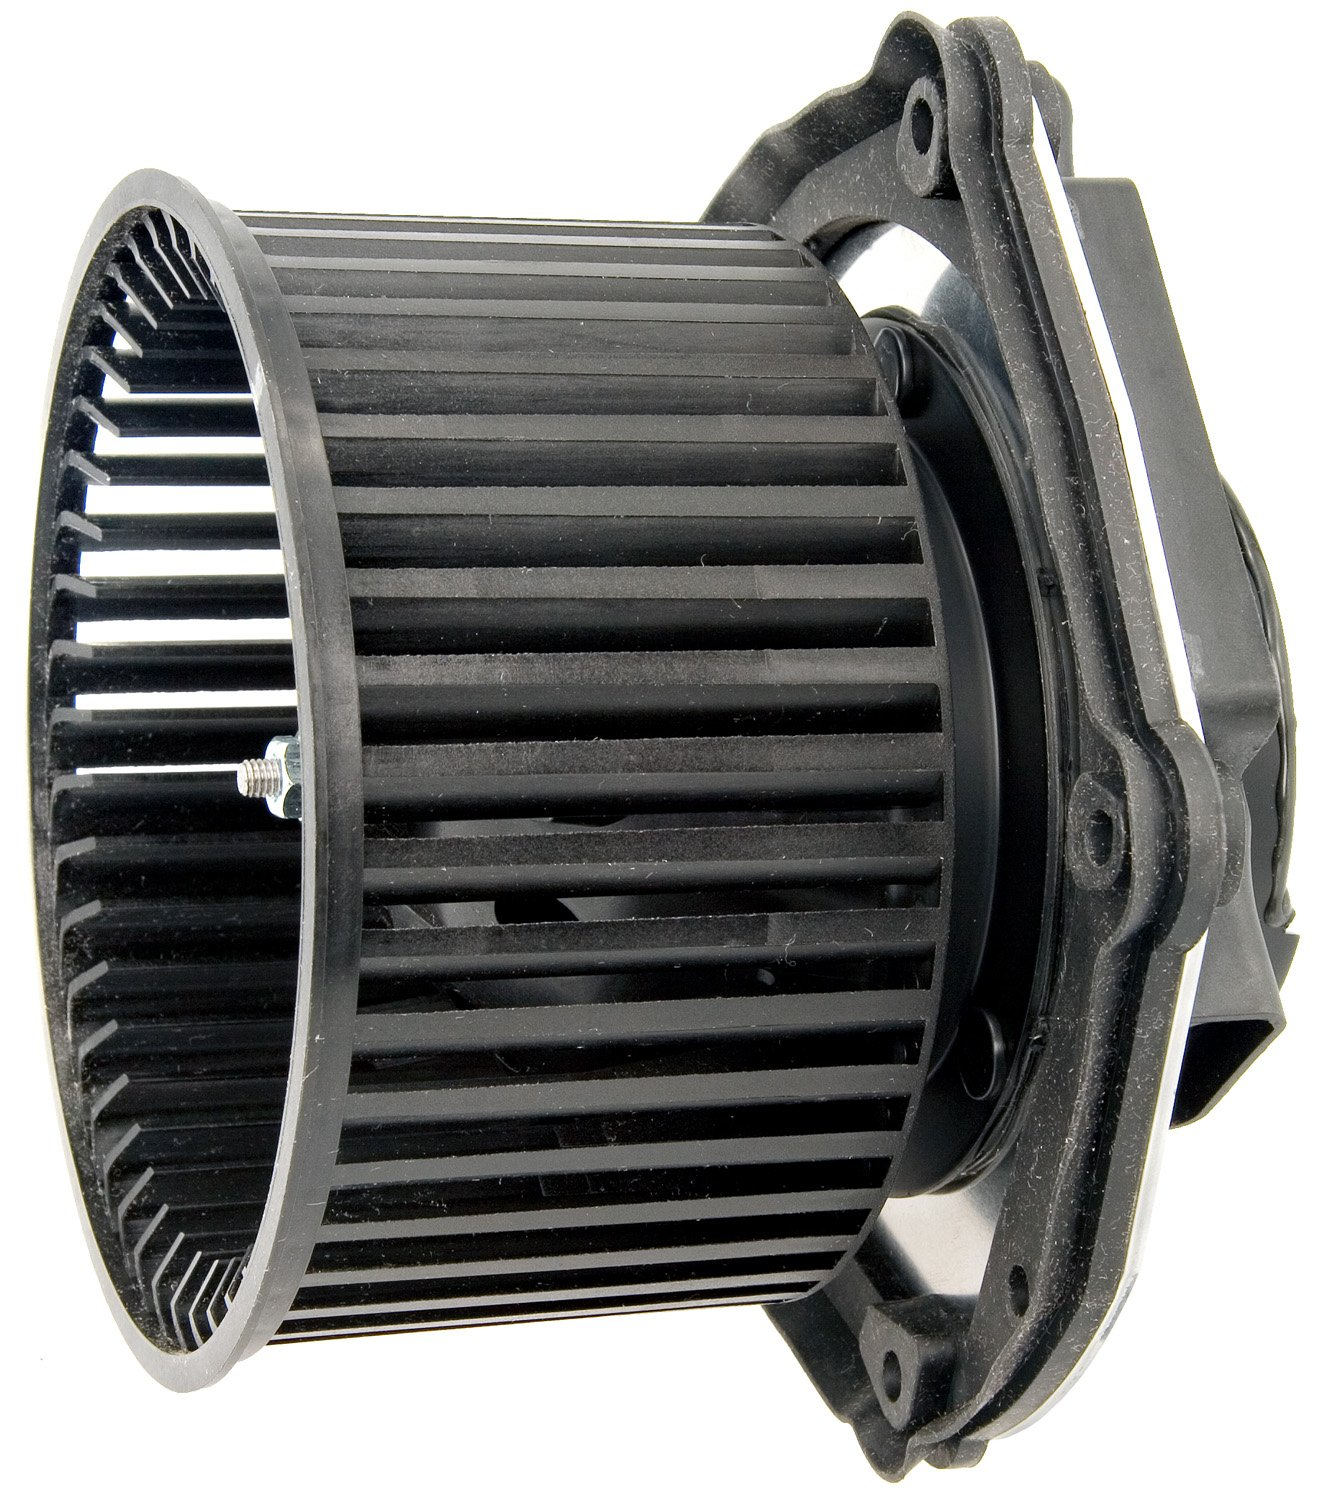 Four Seasons/Trumark 35121 Blower Motor with Wheel